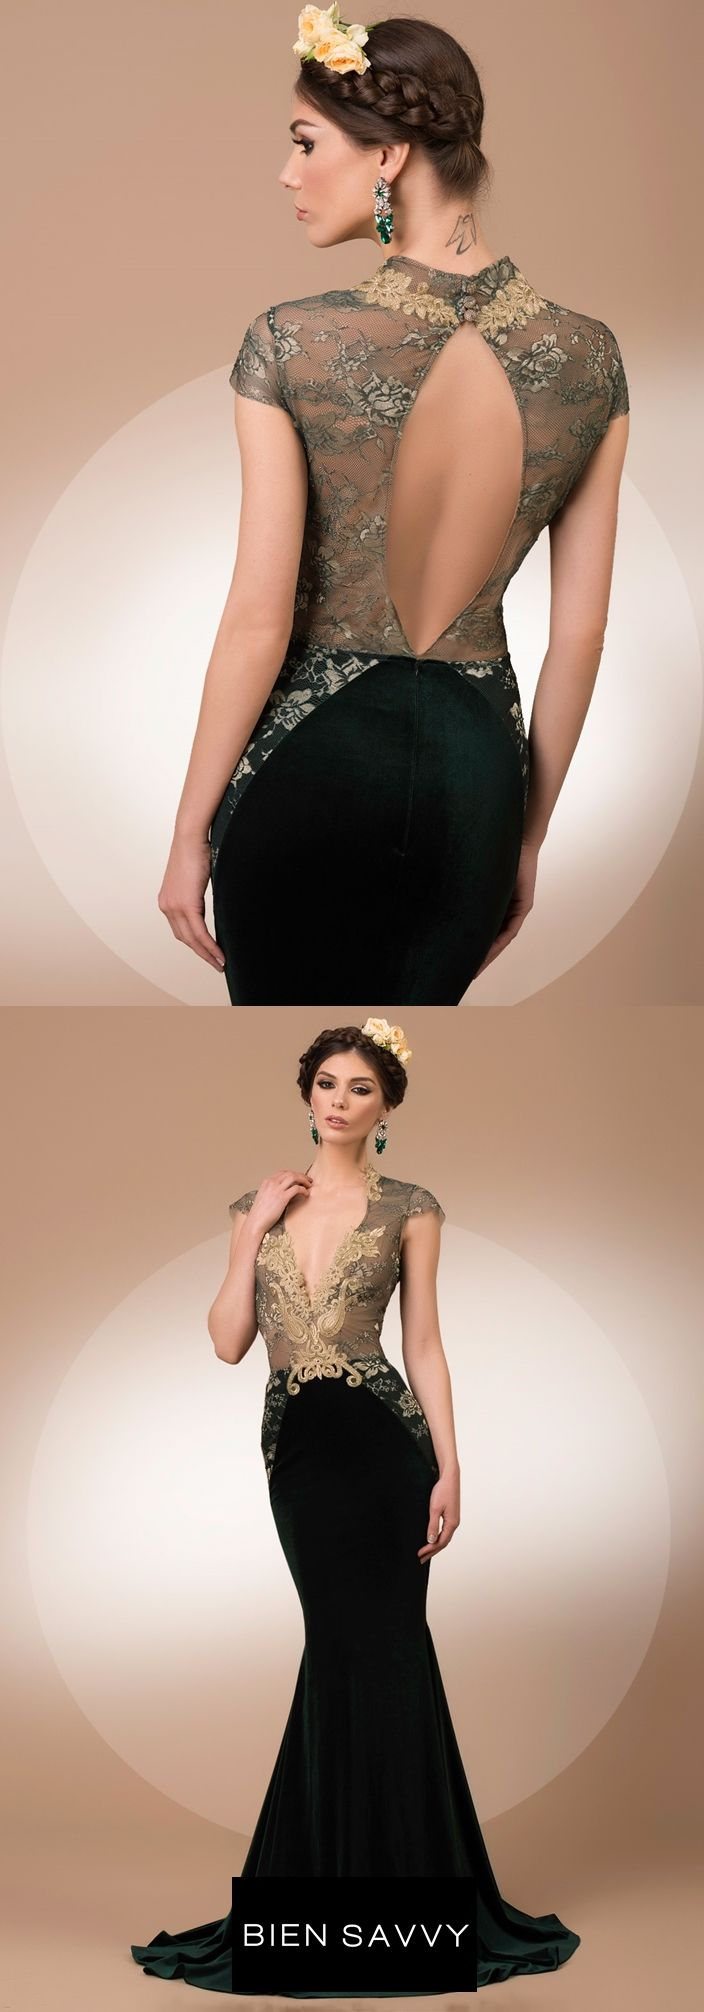 My Secret Forest, a stunning luxury evening gown with a deep V cleavage, crafted in fine lace and velvet, My Secret collection by BIEN SAVVY